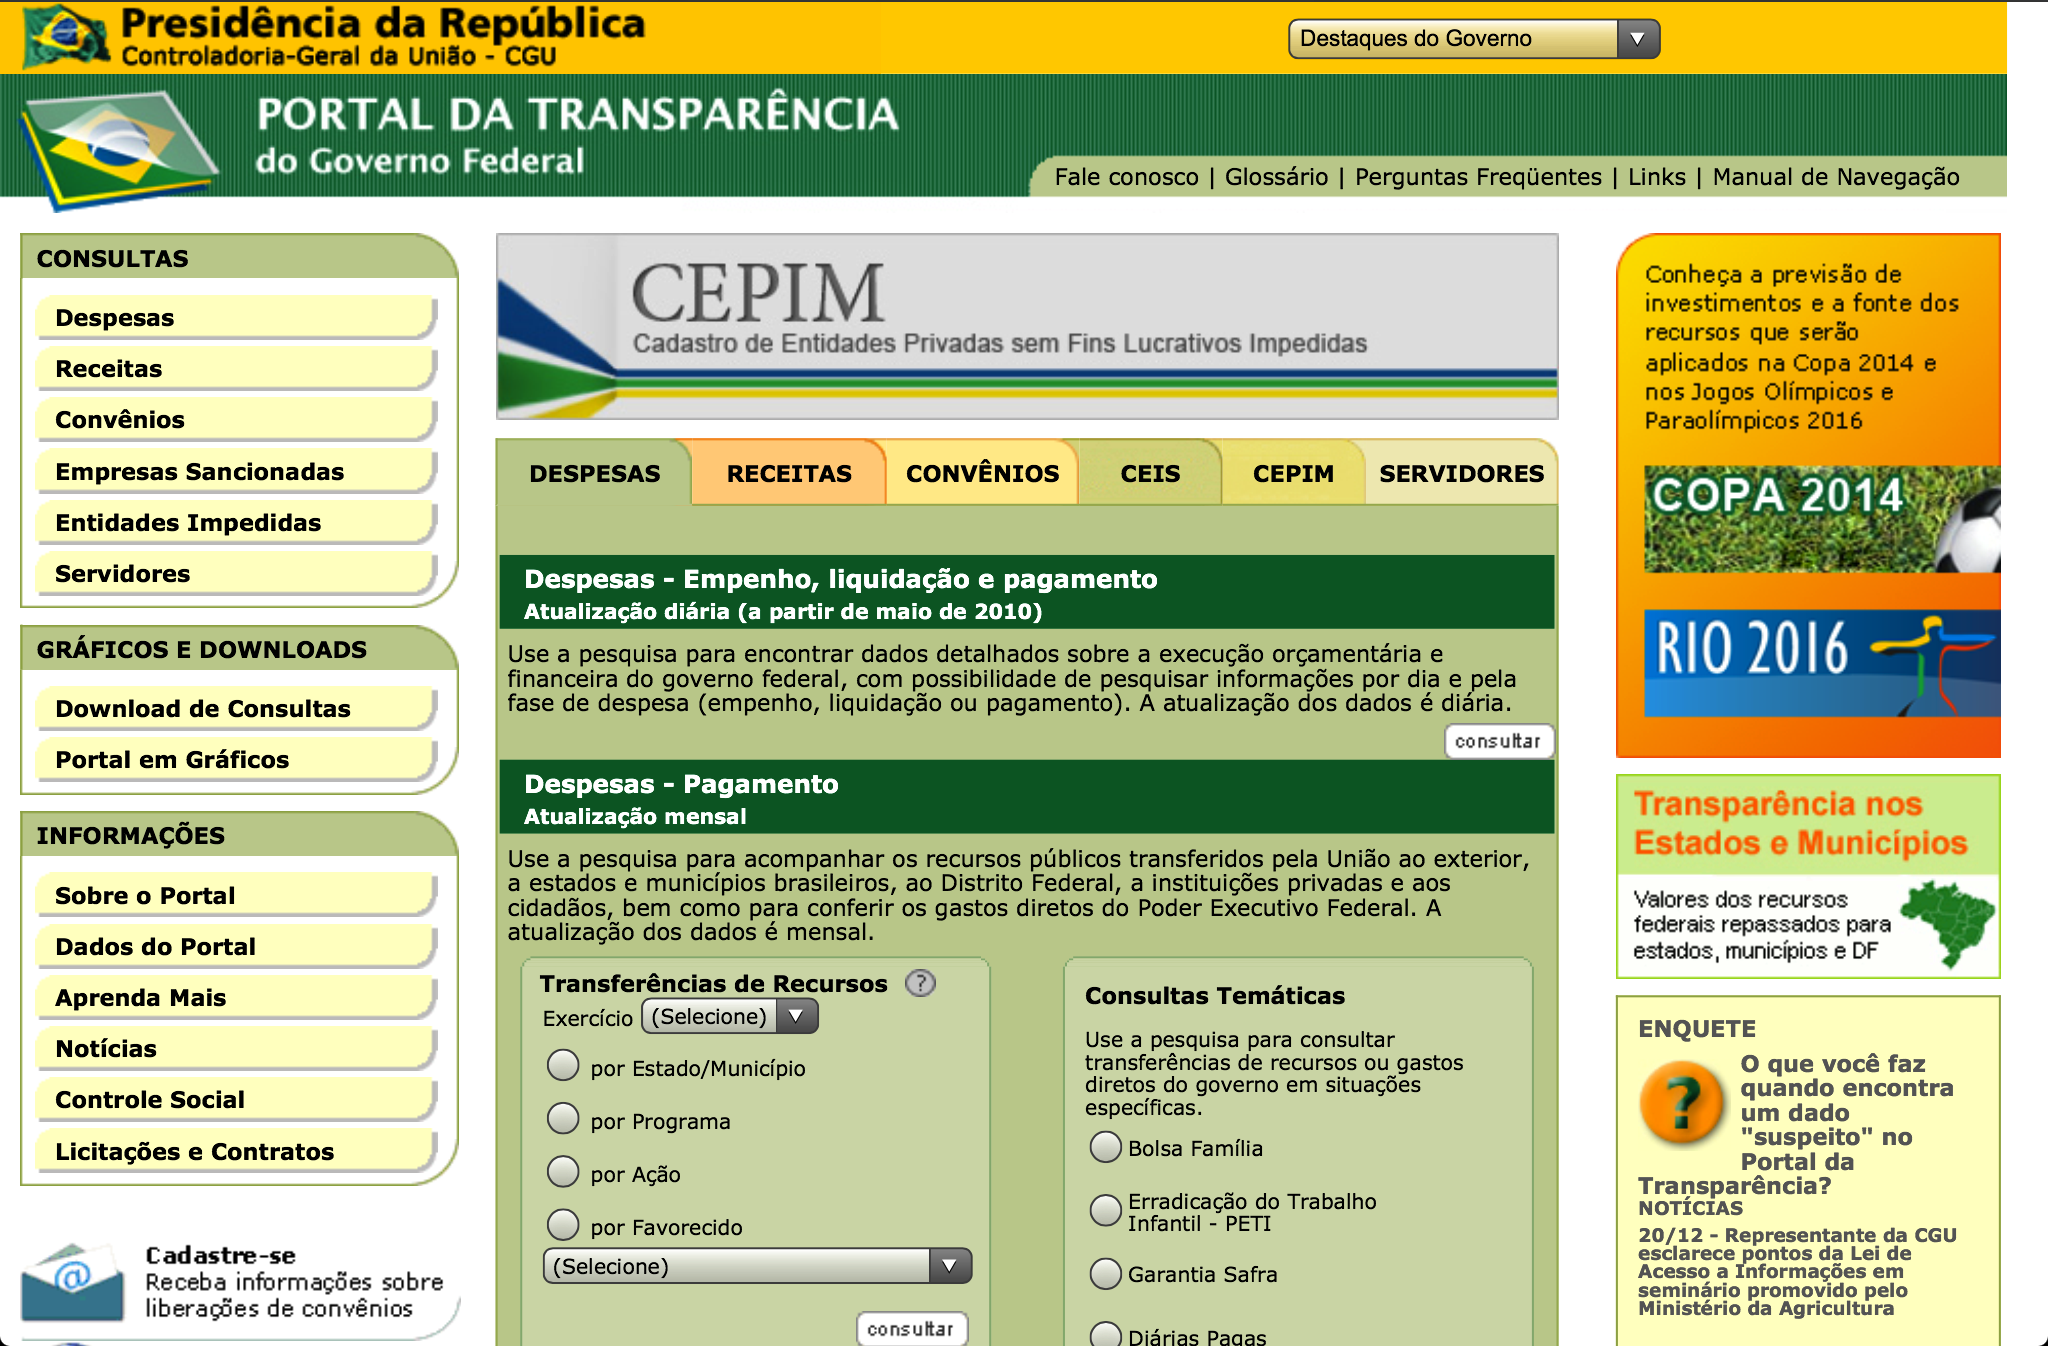 Brazilian Transparency Portal